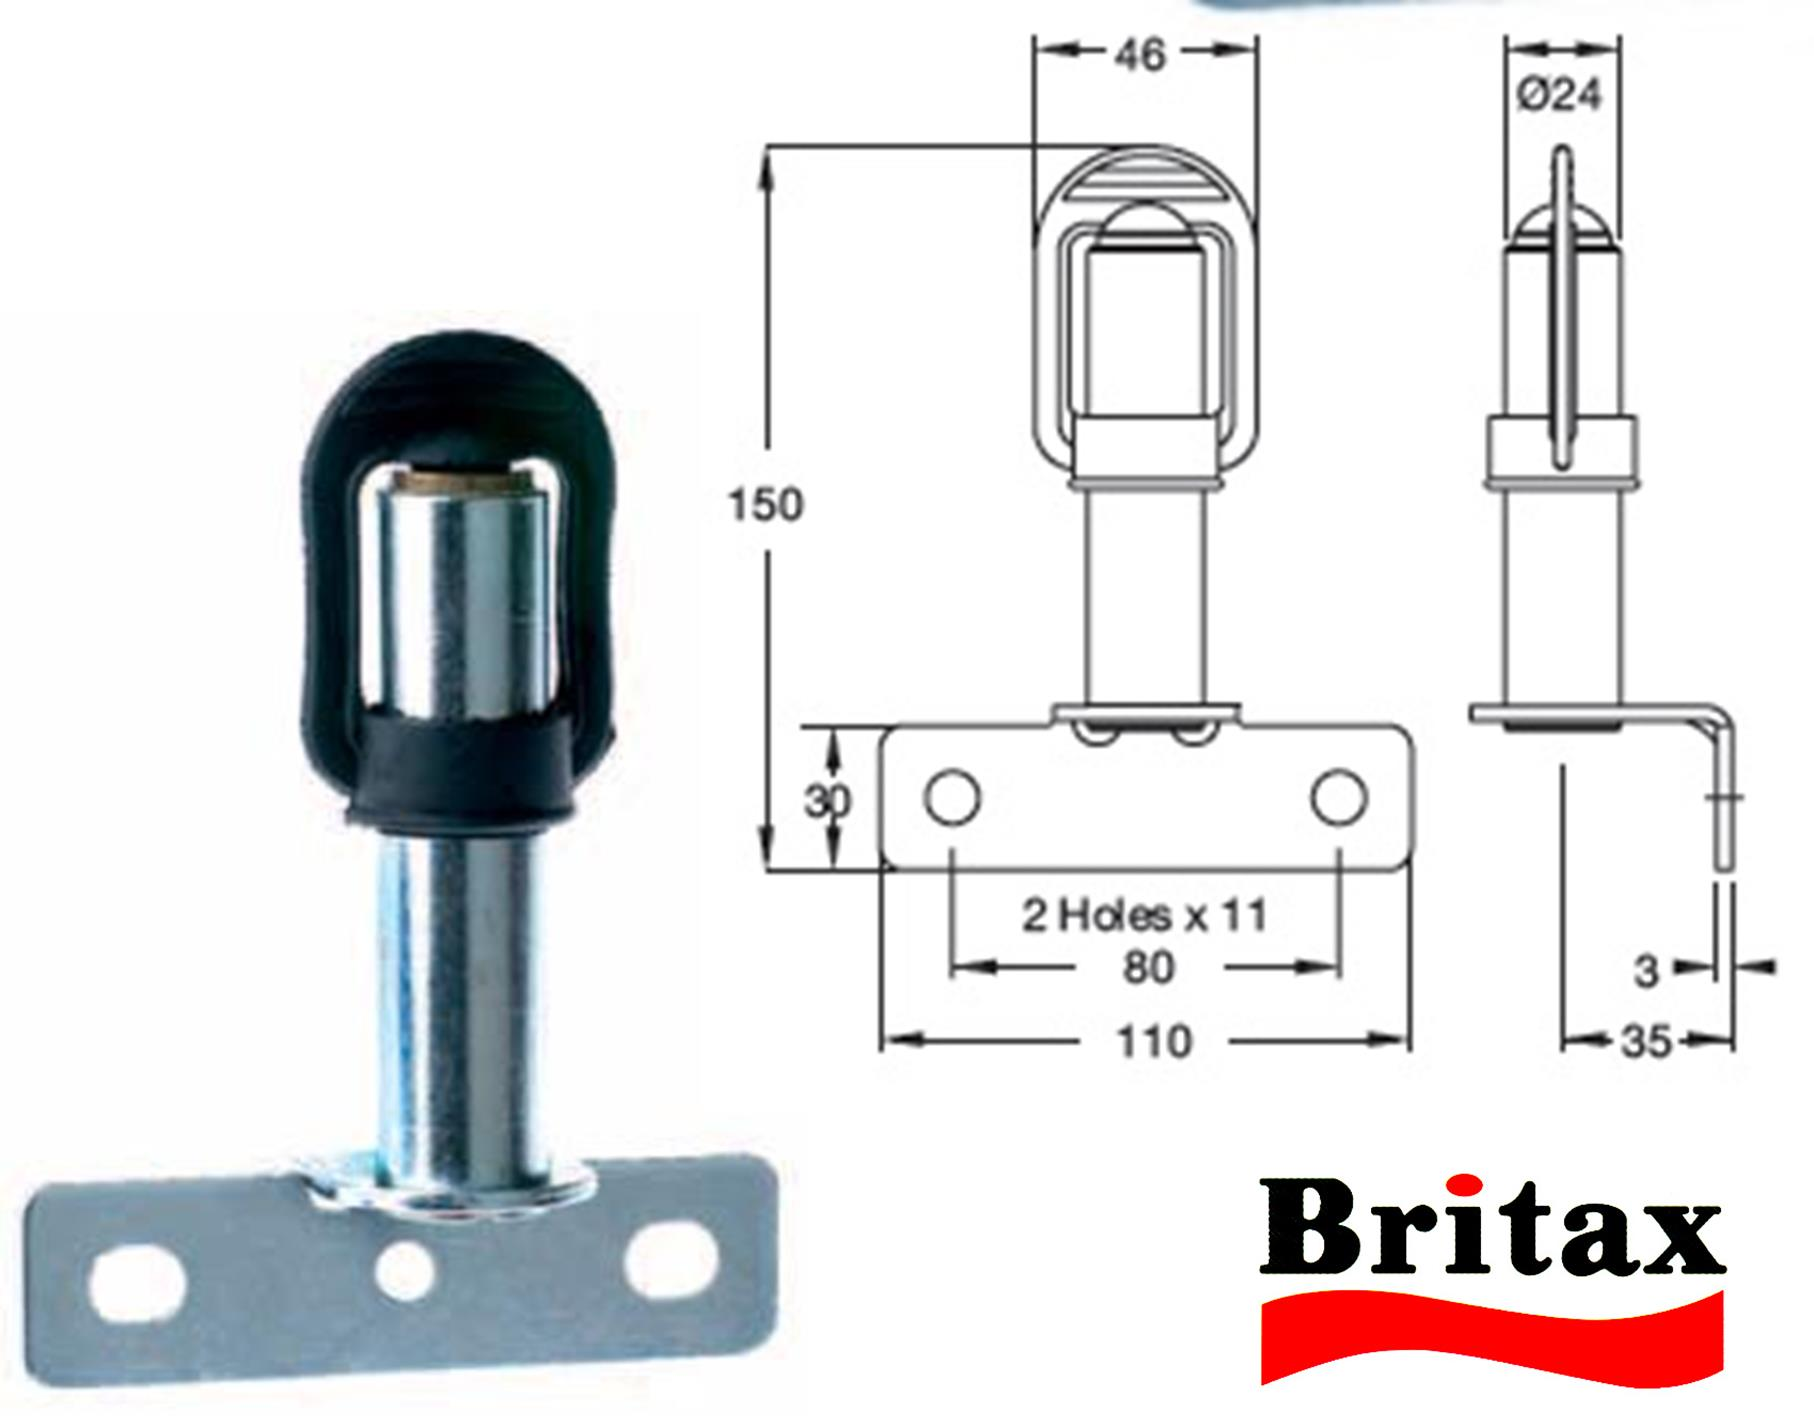 Britax DIN Plug-In Adaptor Socket